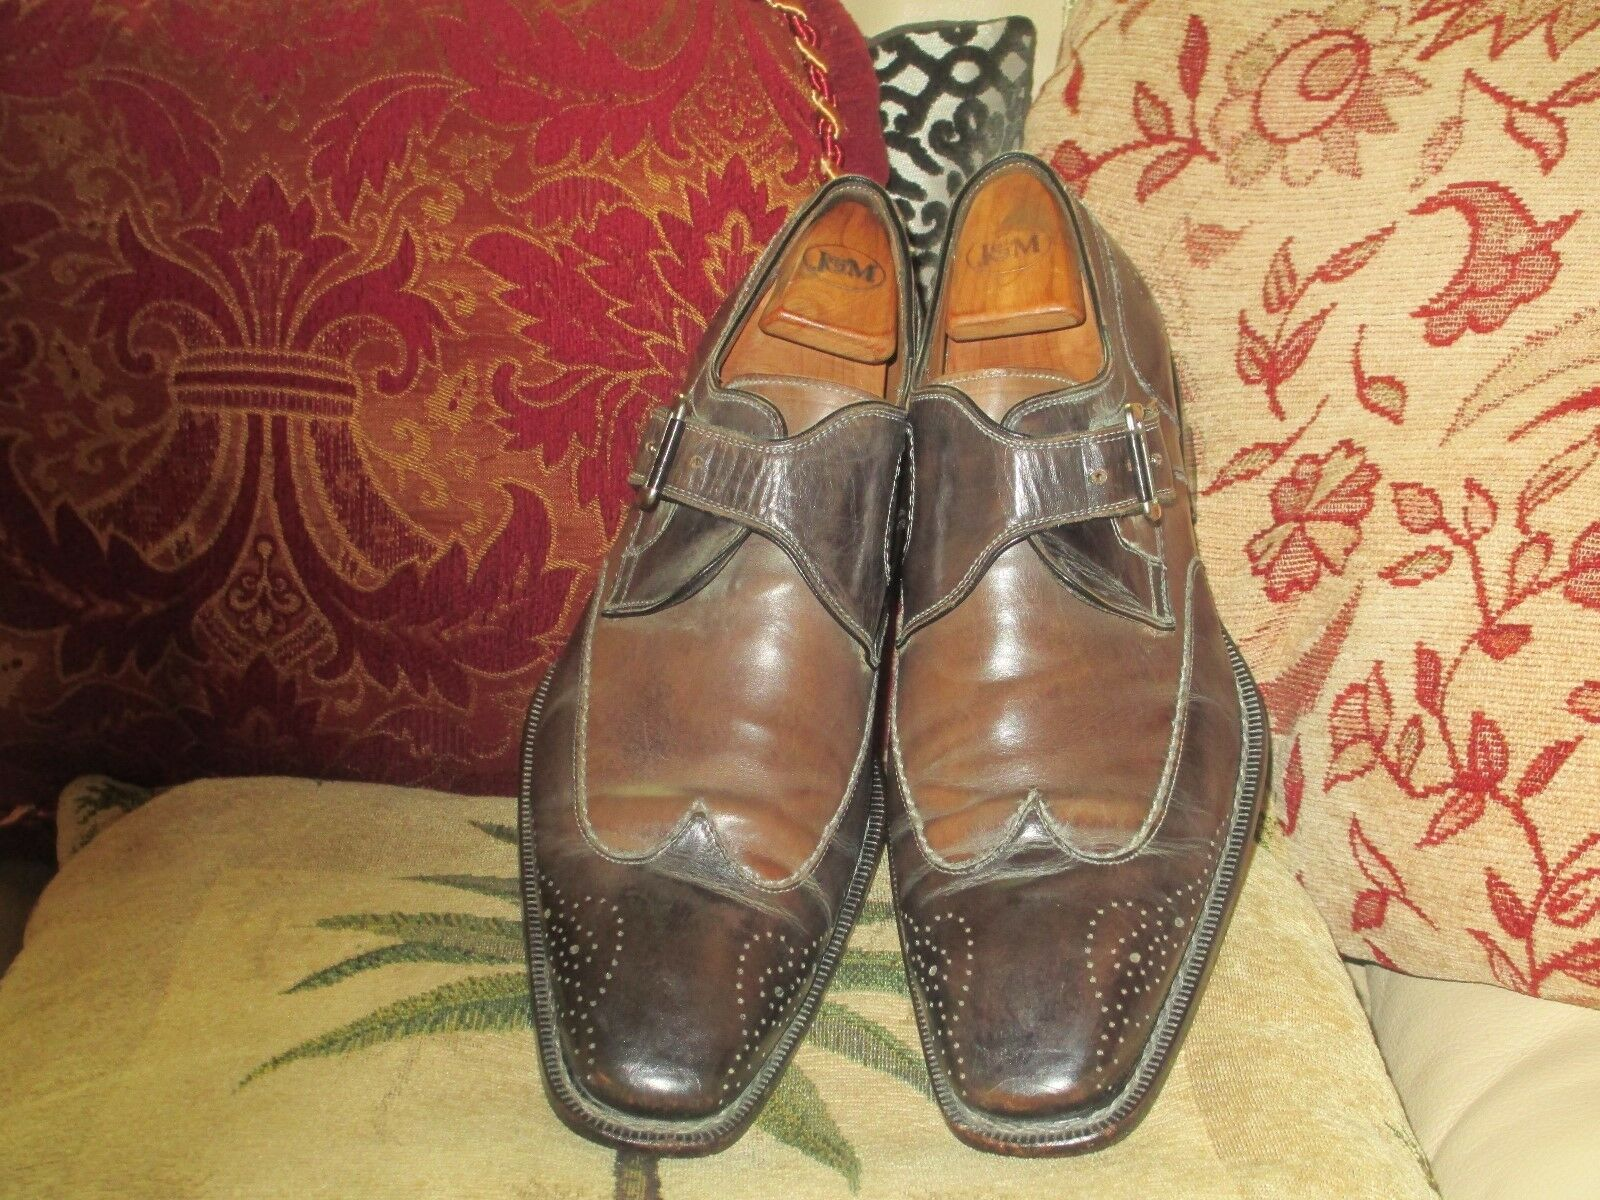 MEZLAN CUSTOM WINGTIP 9M MONK STRAP OXFORDS SIZE 9M WINGTIP MADE IN ITALY b5da05